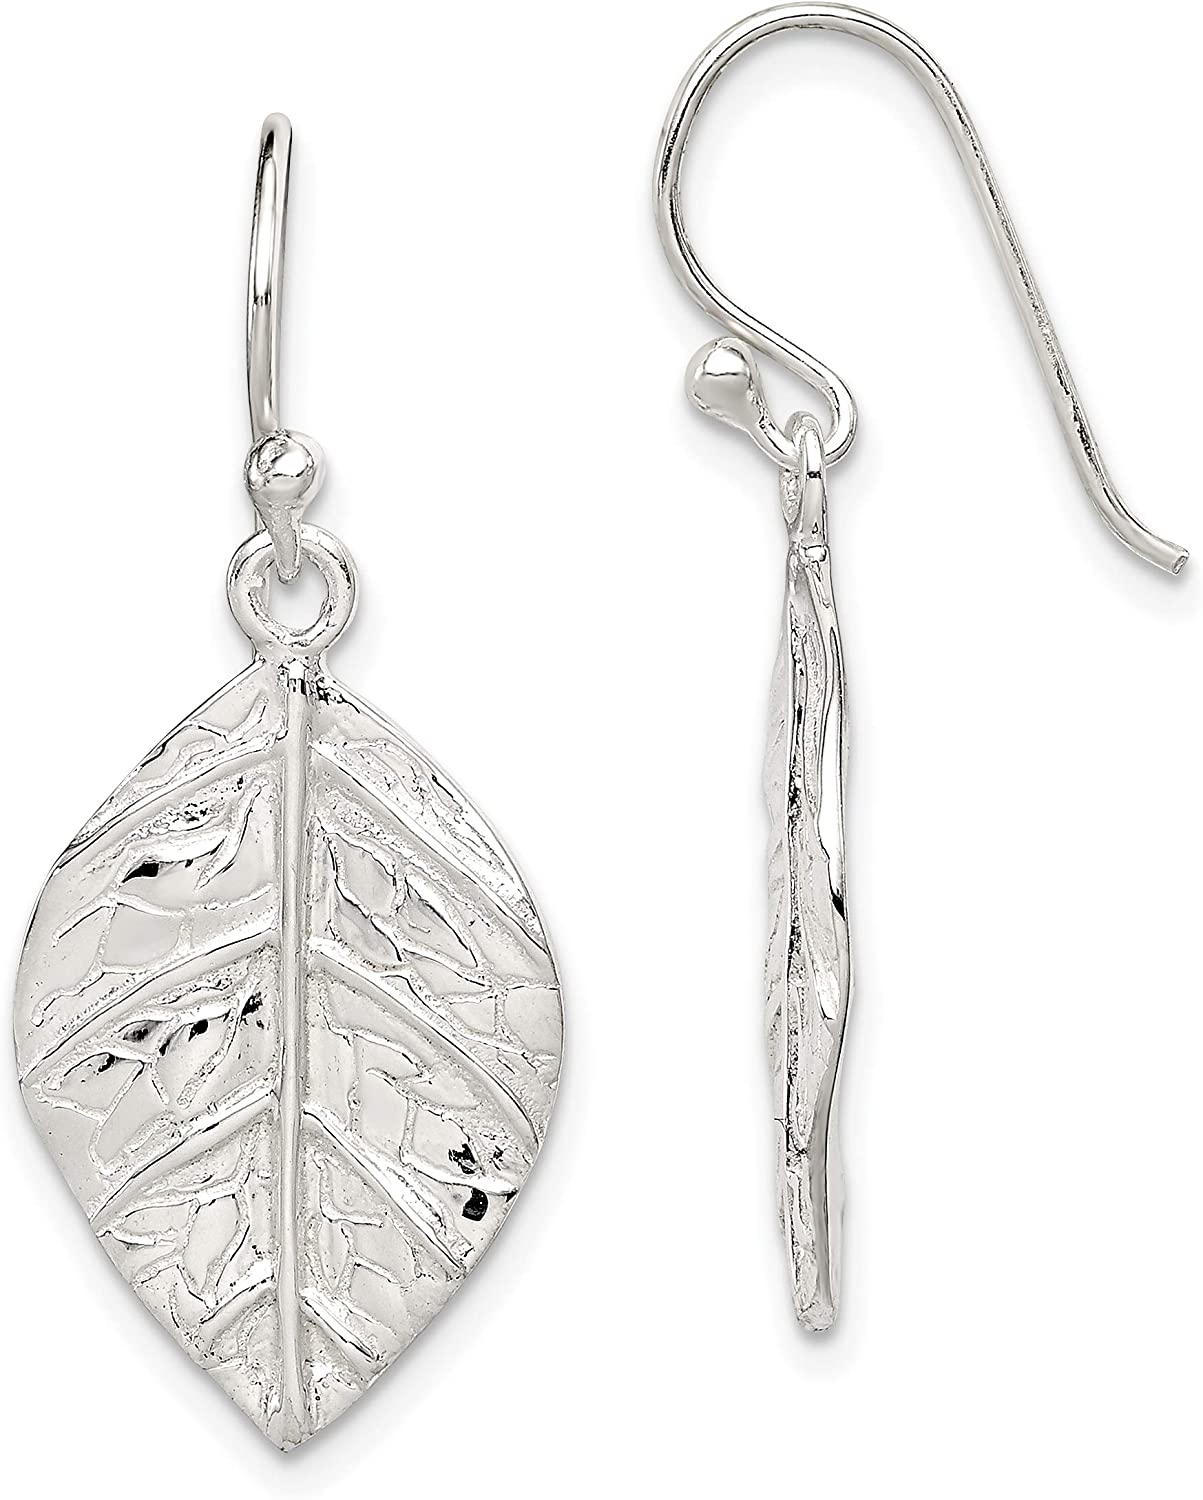 Sterling Silver Leaf Textured Dangle Earrings and a pair of 4mm CZ Stud Earrings